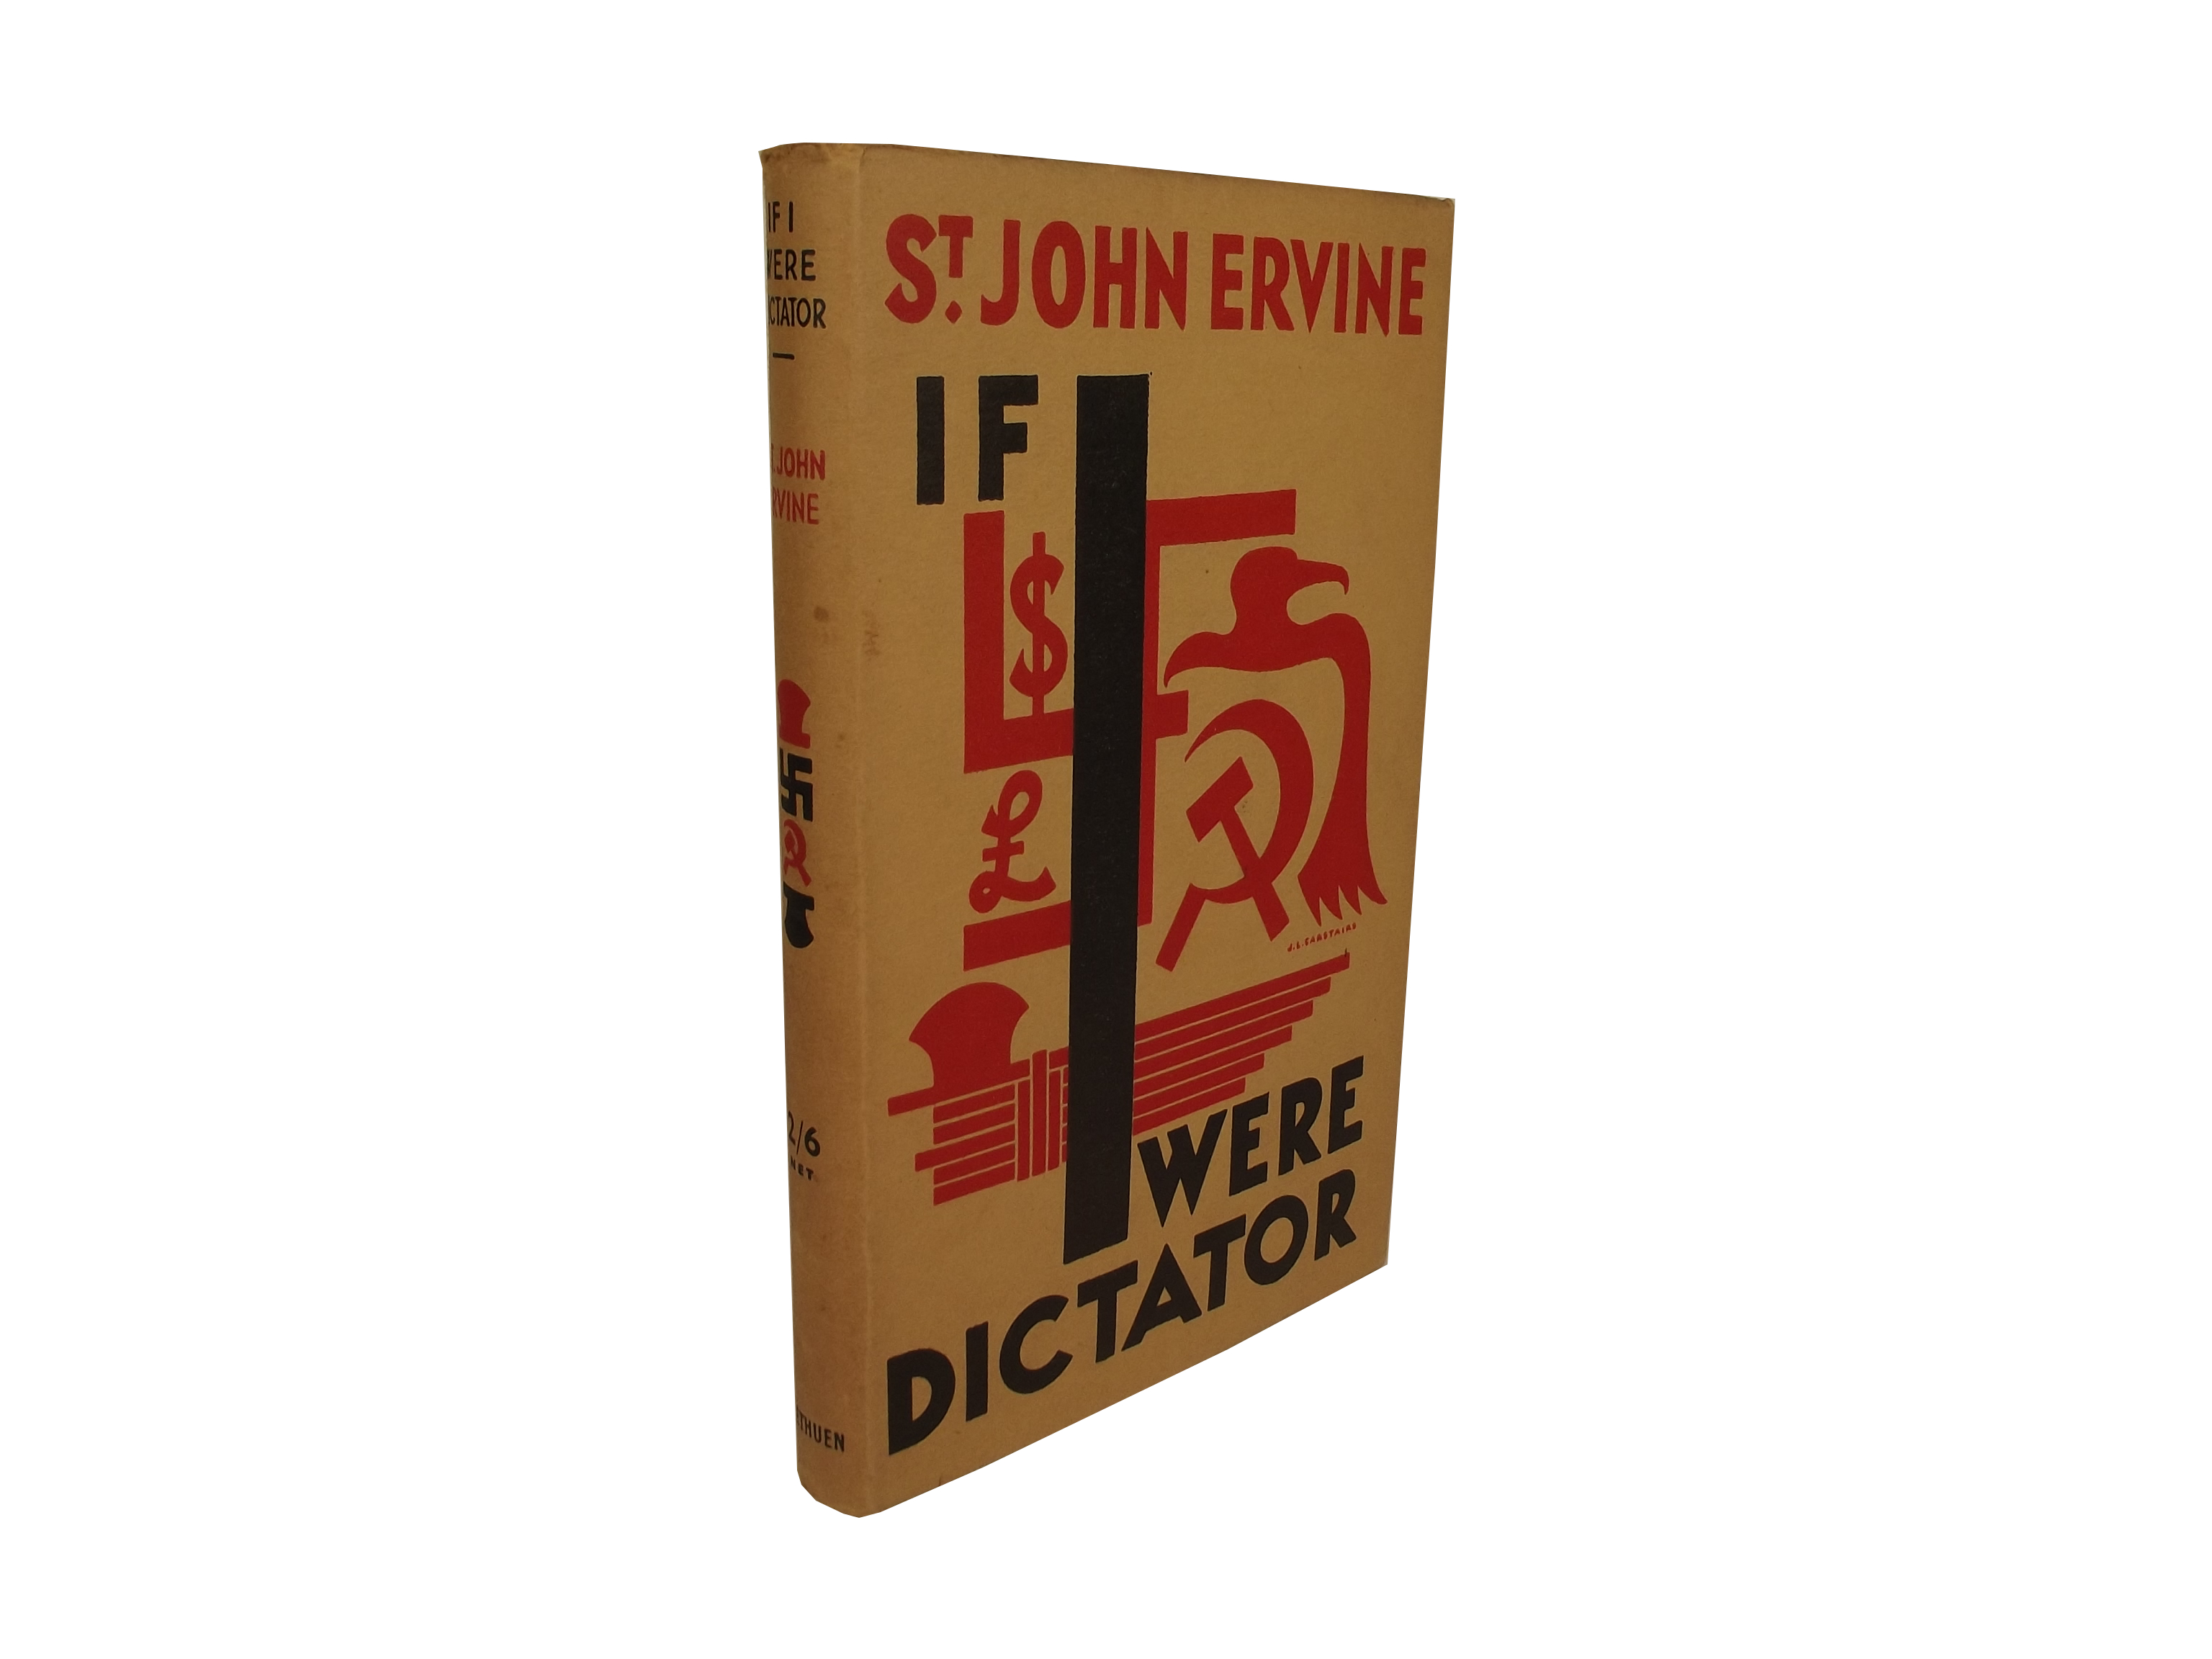 Ervine's If I Were Dictator book